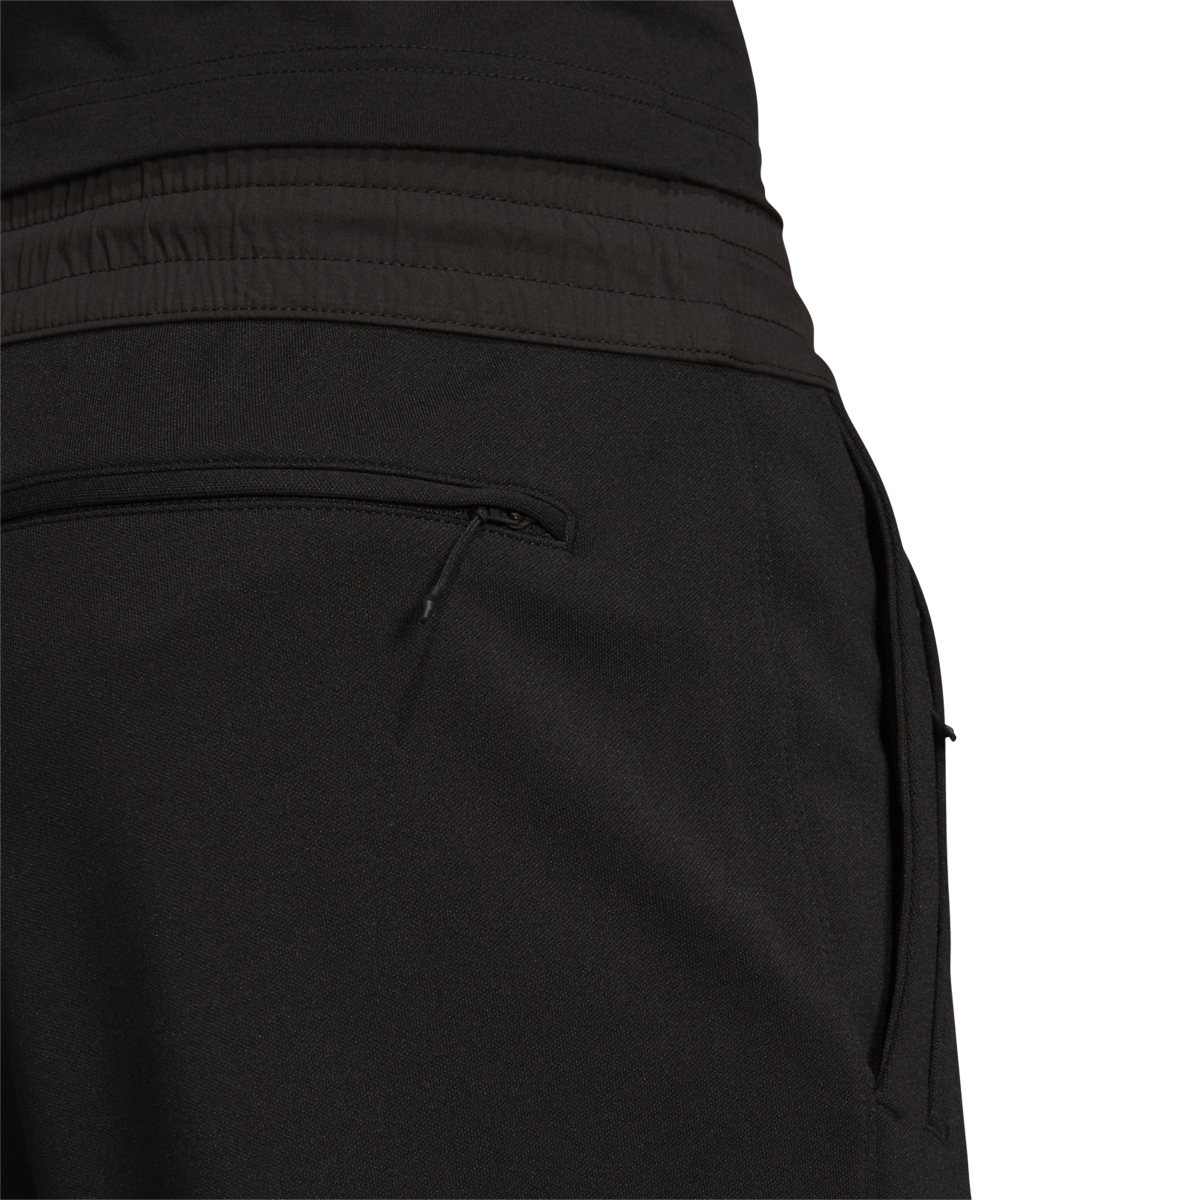 adidas Y-3 CL Track Pant